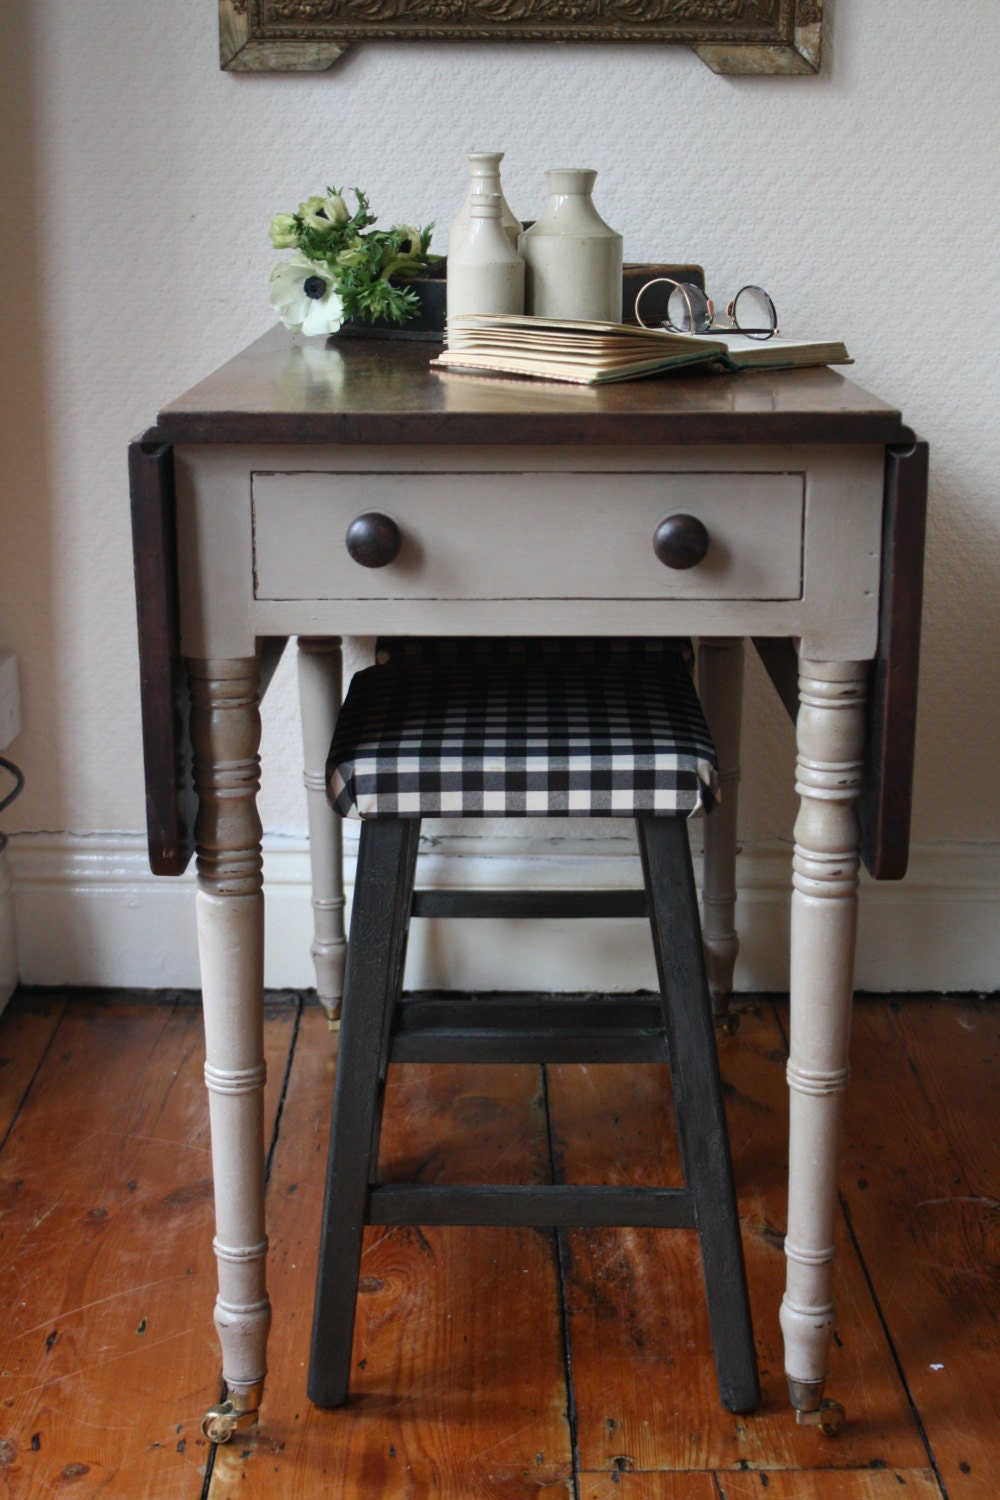 Restored Vintage Drop Leaf Table With Castors And Single